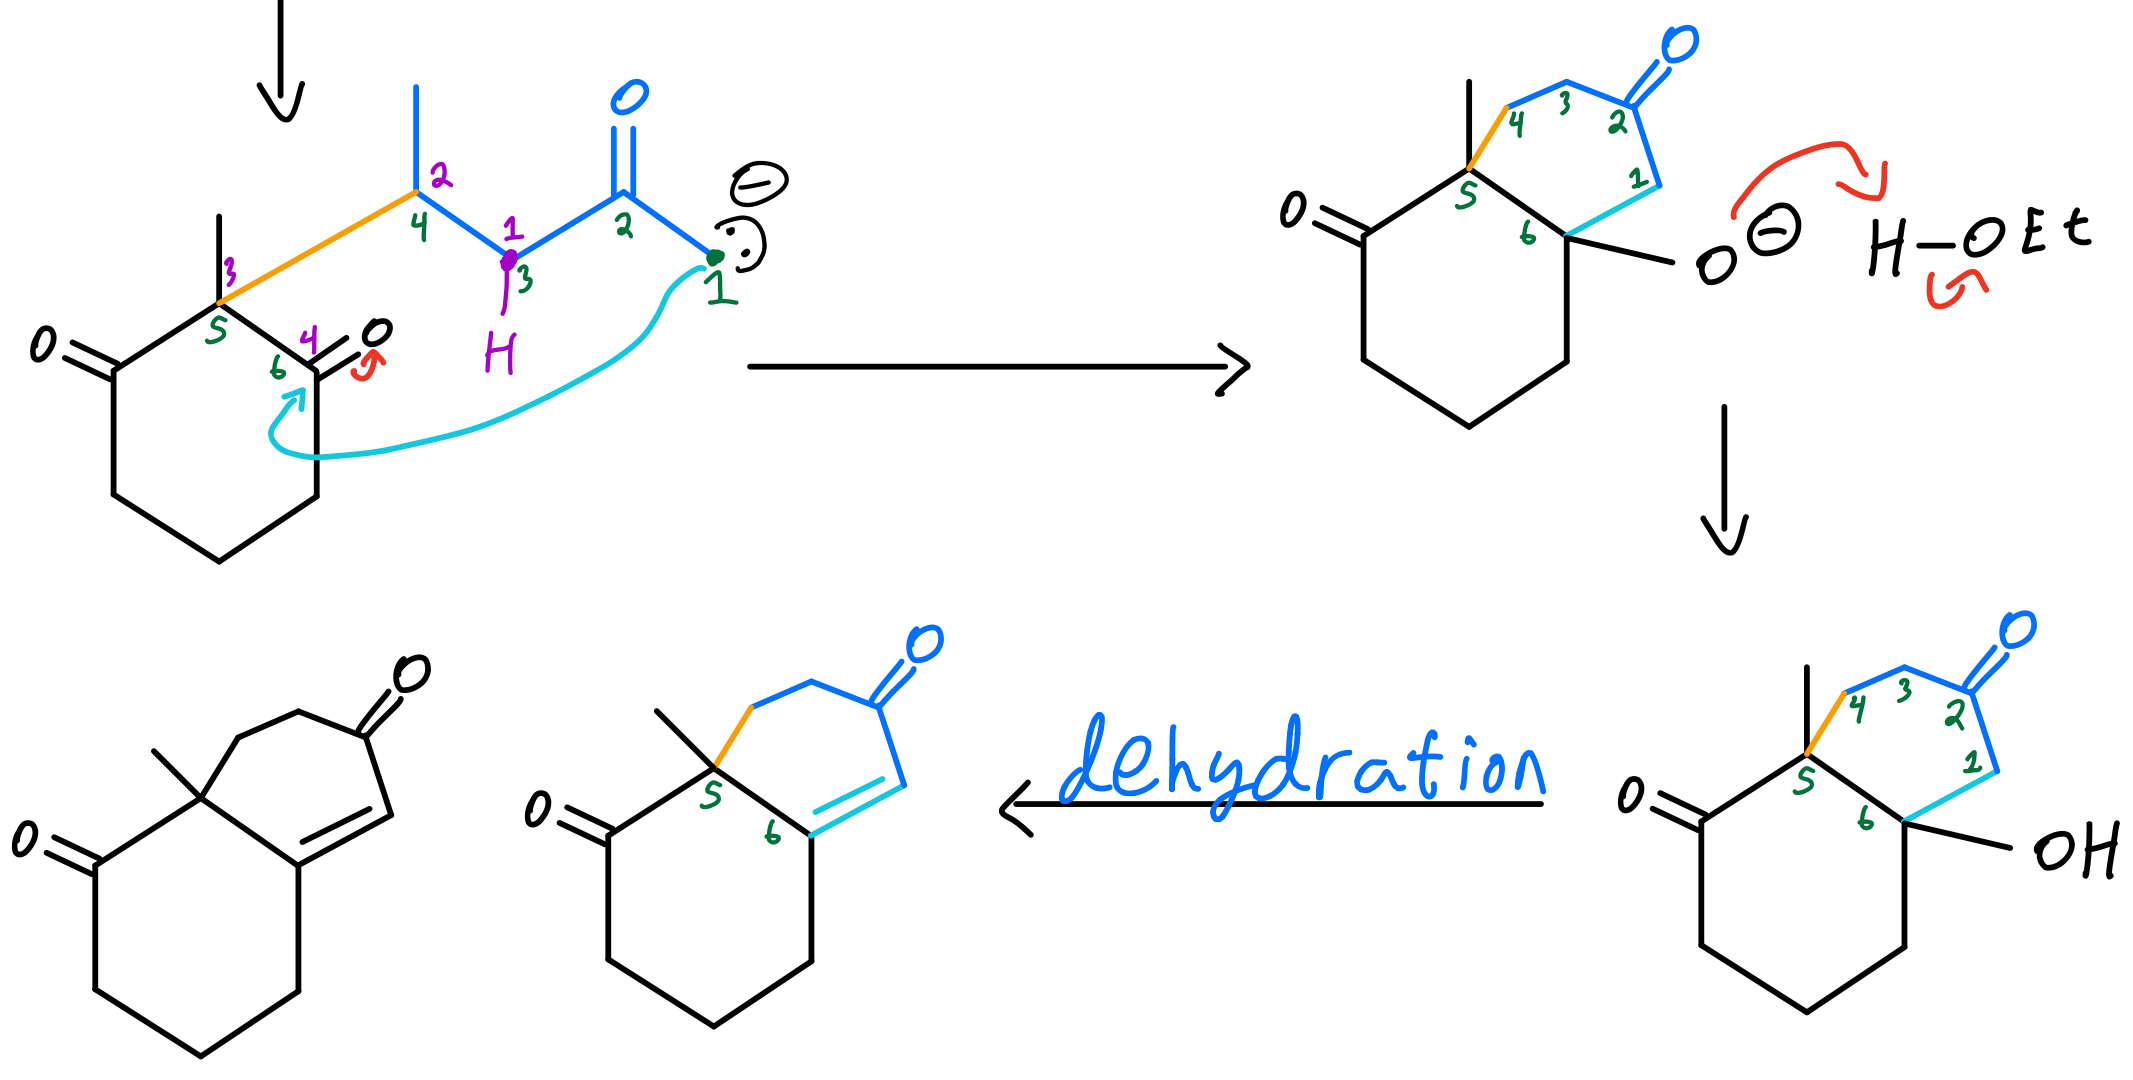 Ring-formation-and-dehydration